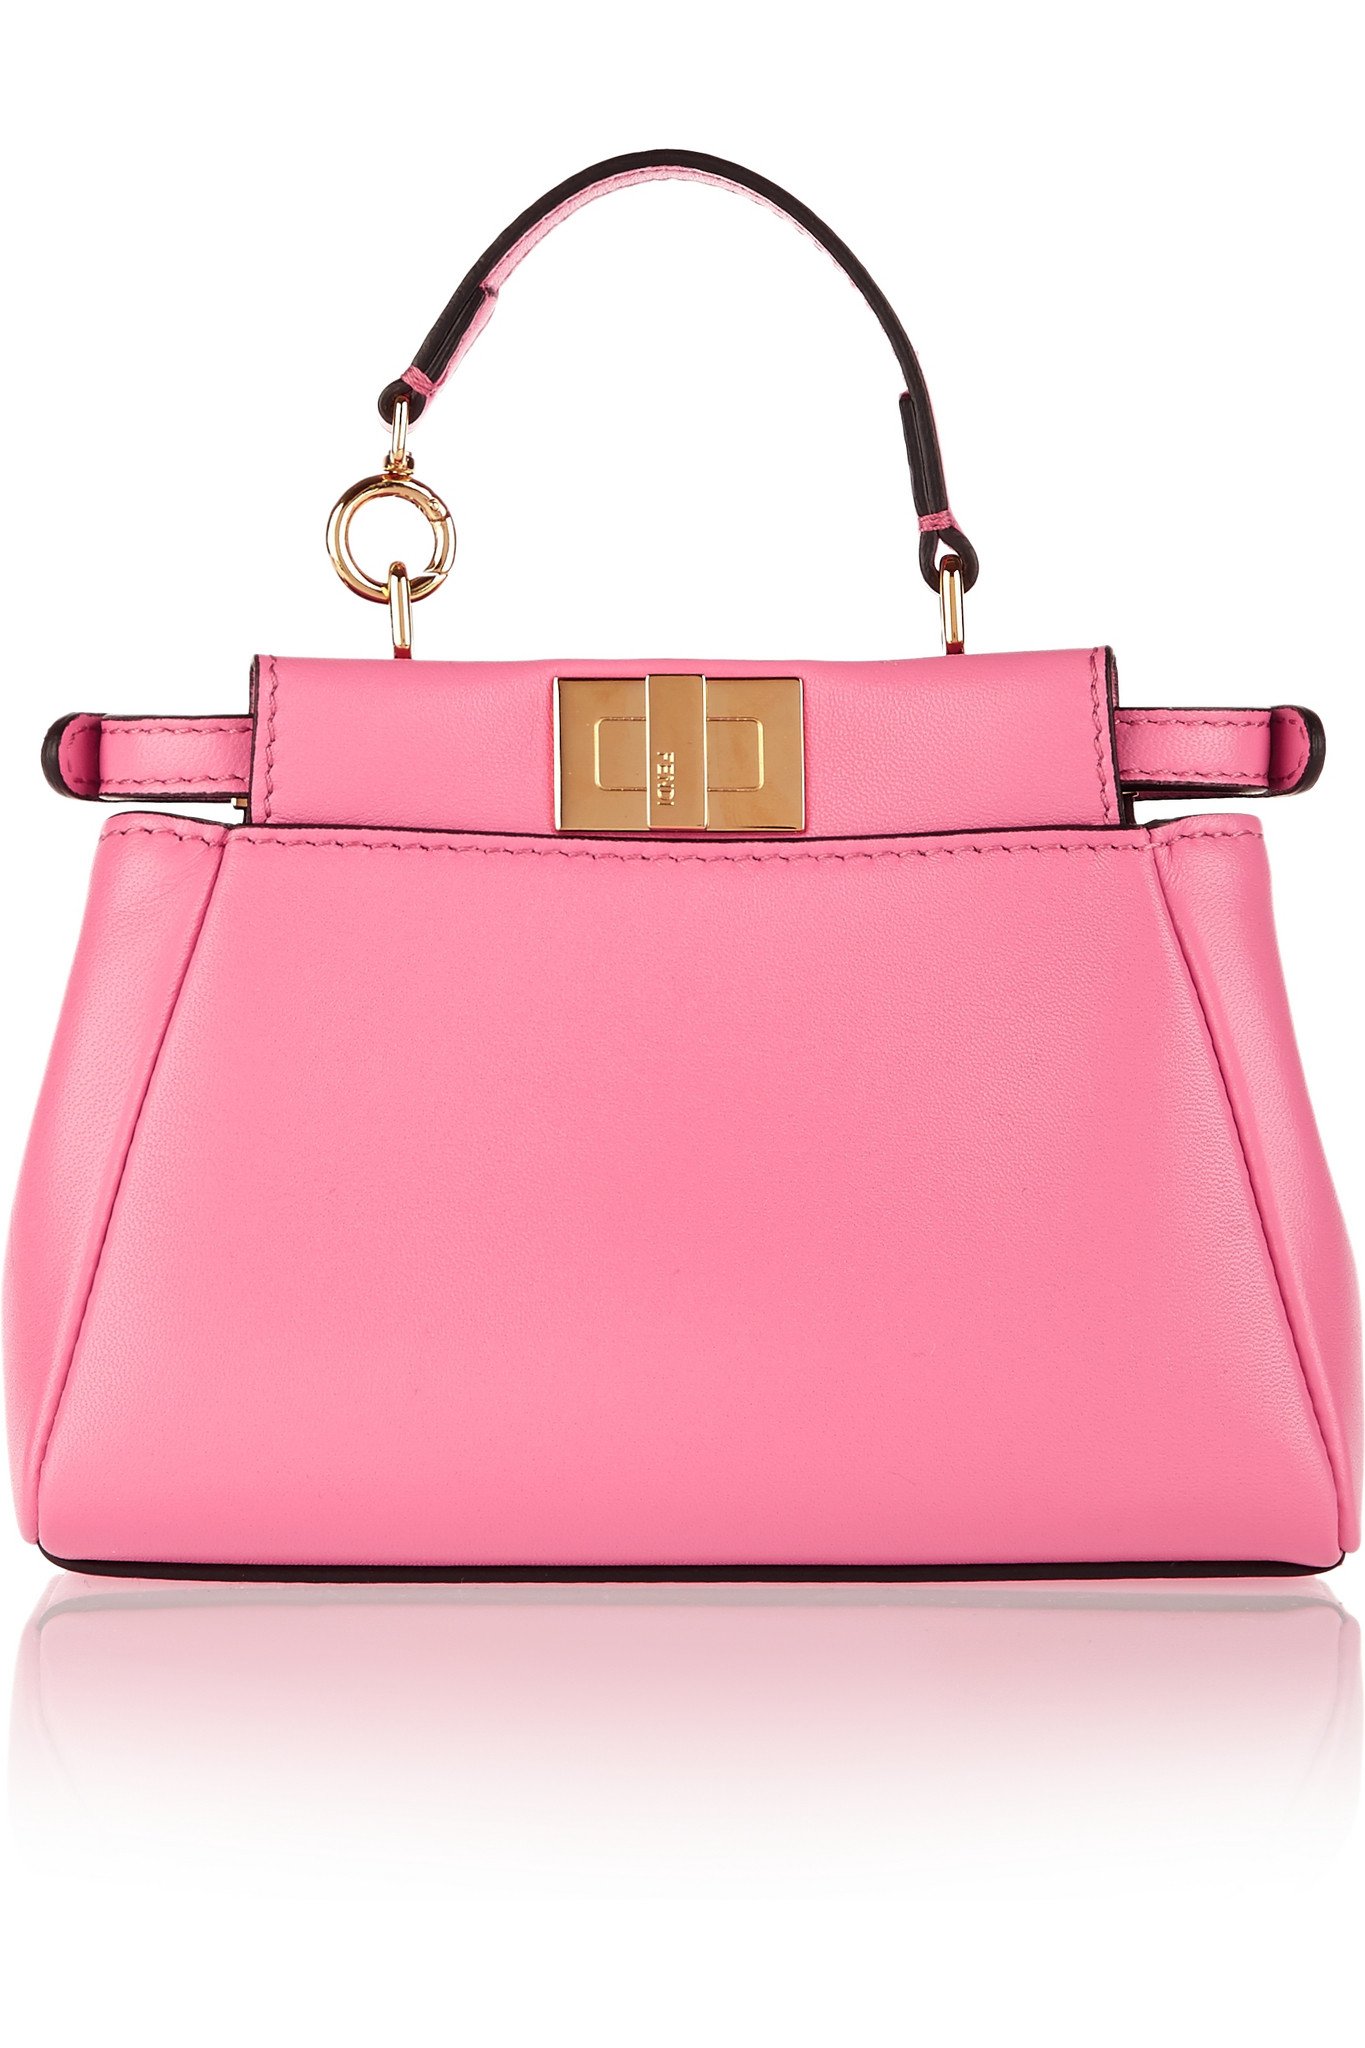 5b352702746c ... italy fendi peekaboo micro leather shoulder bag in pink lyst f5ce8 3cfc2